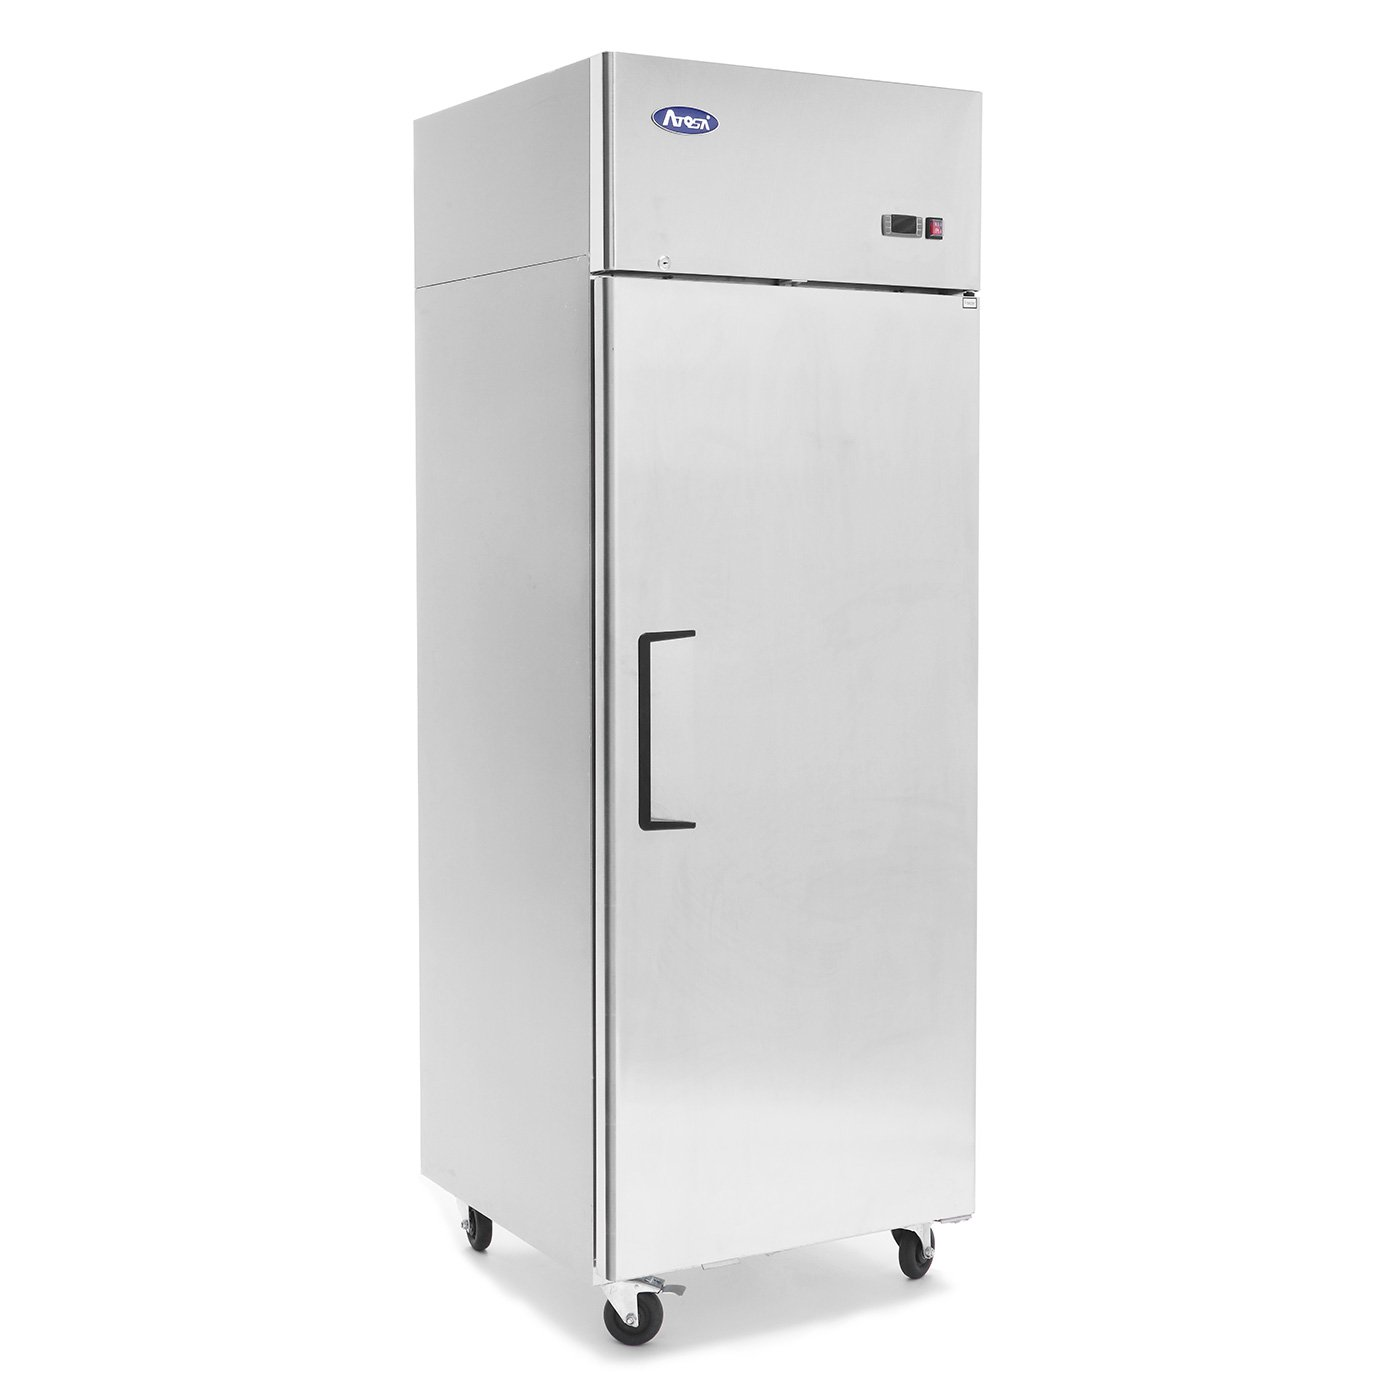 Commercial Refrigerator Freezer,ATOSA MBF8001 Single 1-Door Top Mount Stainless Steel Reach In Commercial Refrigerators Freezer For Restaurant Kitchen 22.6 cu.ft -10℉—0℉